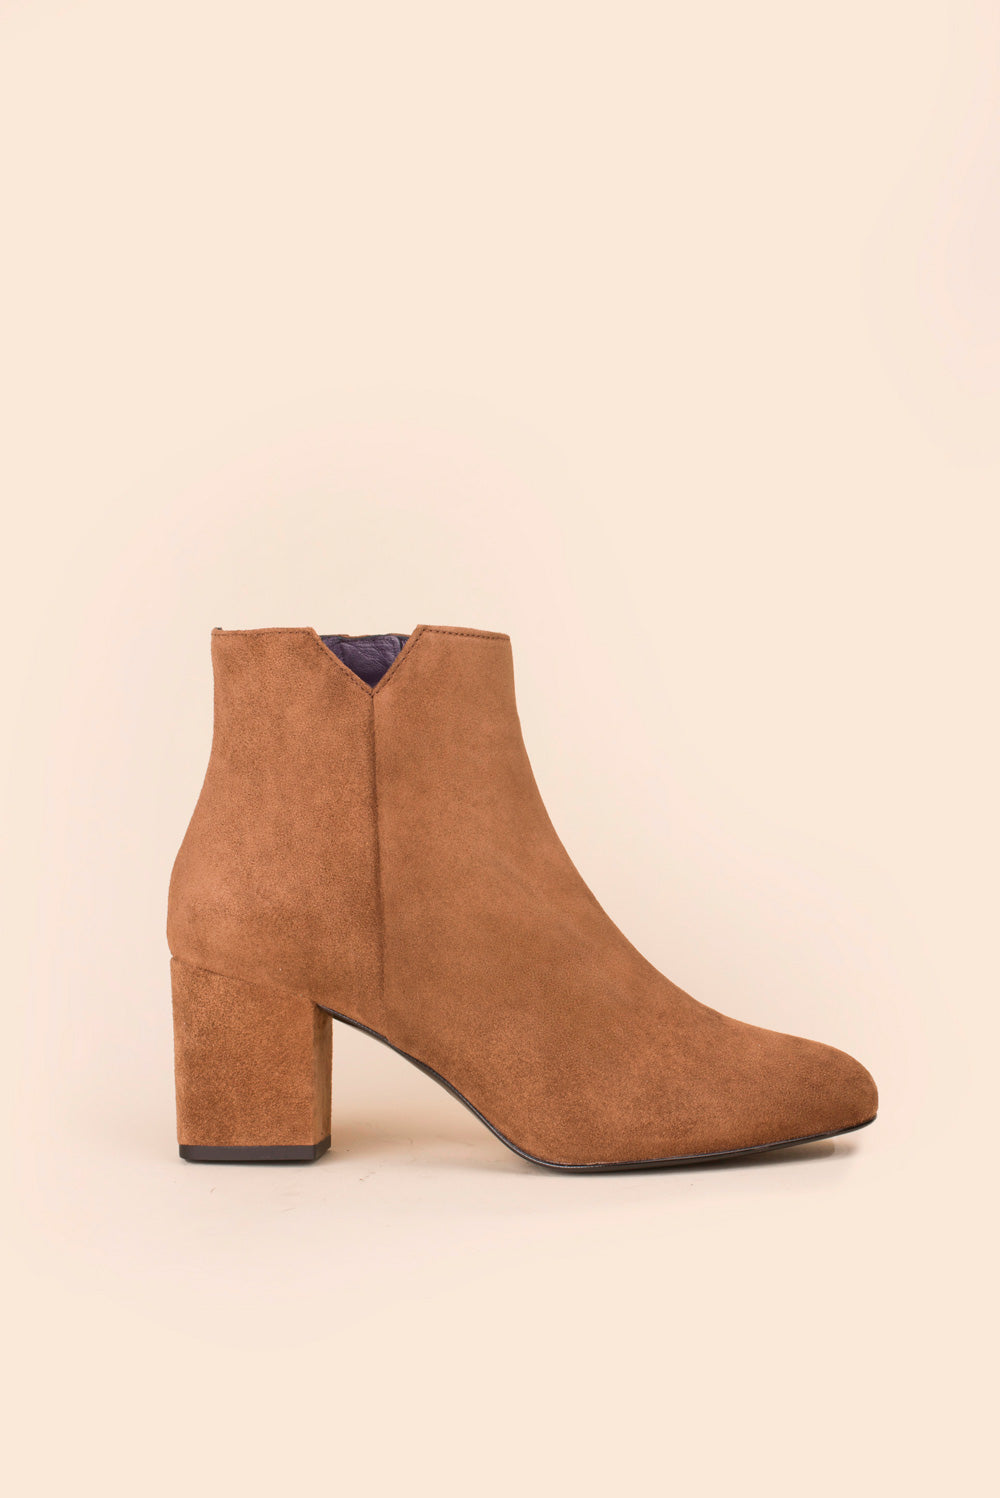 Bottines Virgin daim rhum Anaki Paris